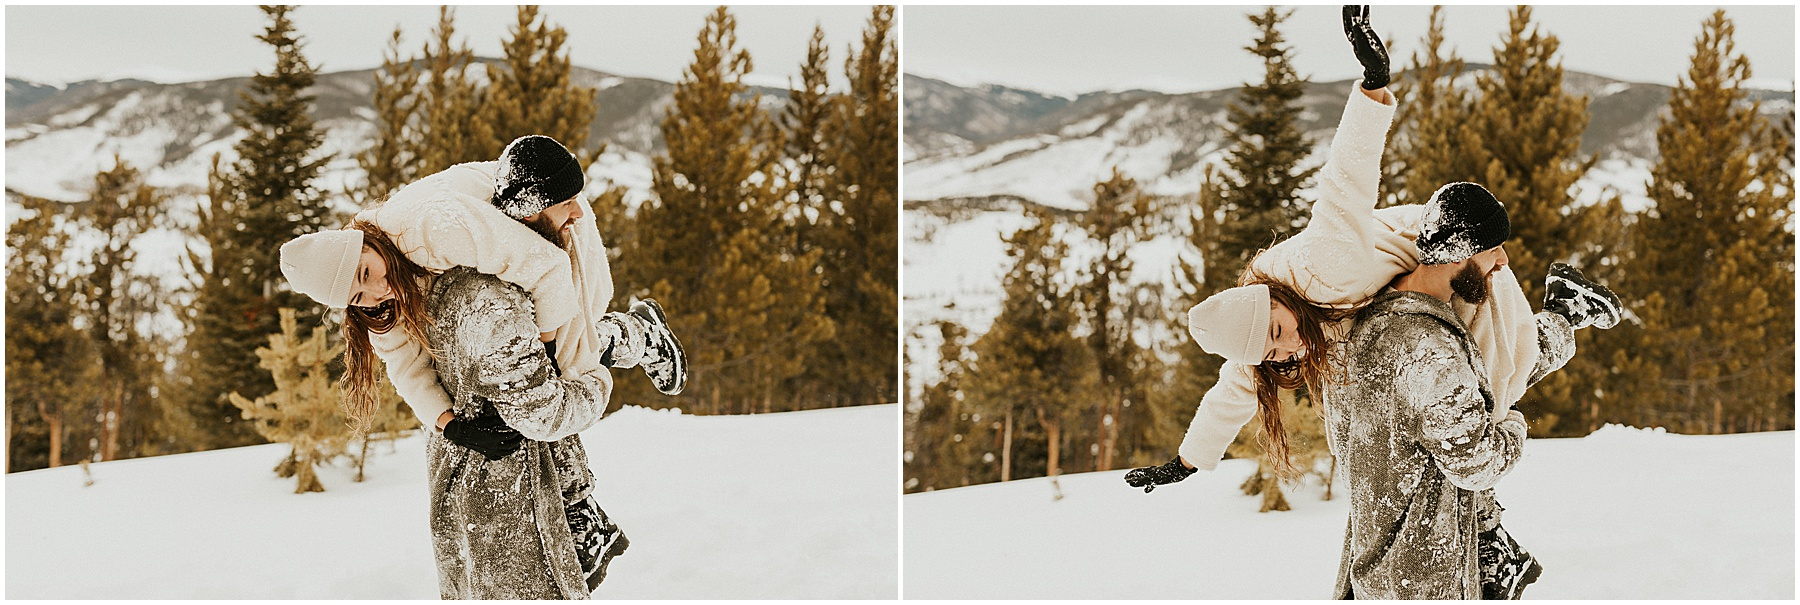 Proposal and engagement session in Breckenridge, Colorado Saphire Point_0425.jpg